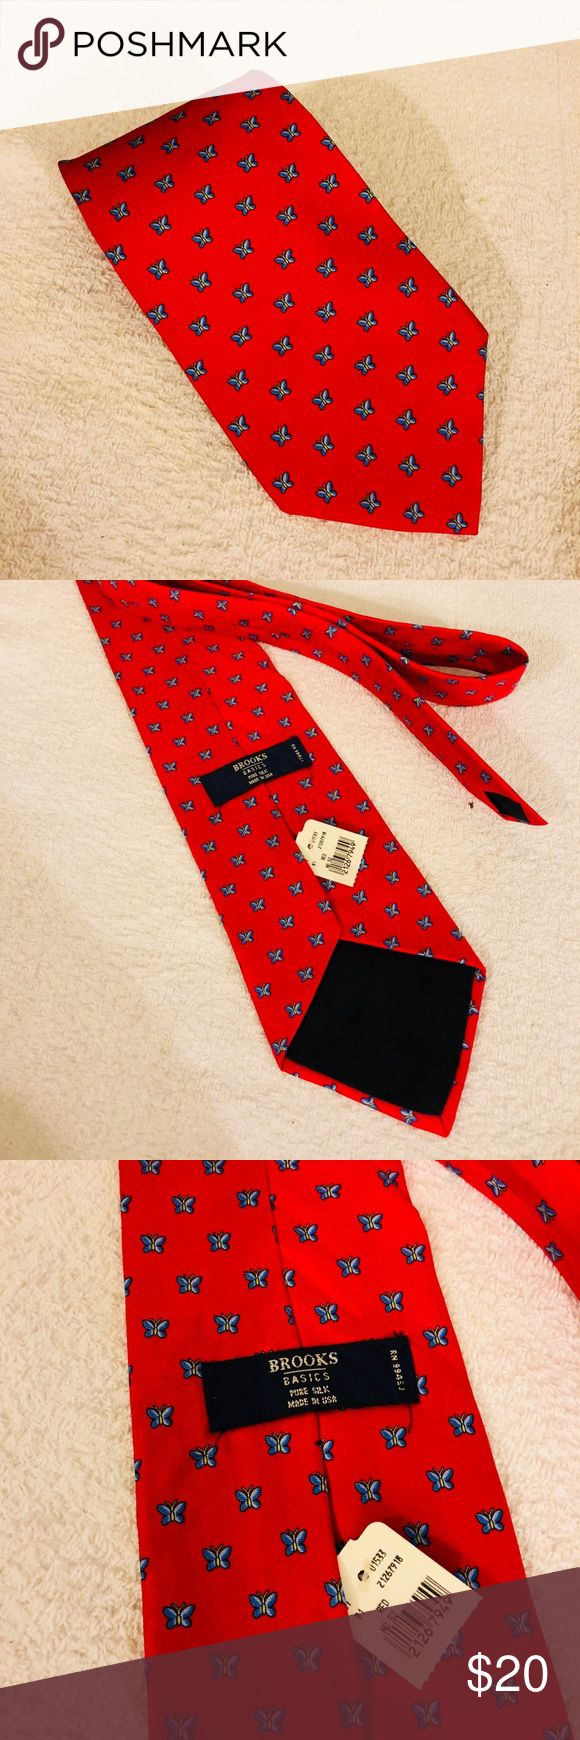 Brooks Brothers NWT Red w/Blue Butterfly Check Tie Brooks Brothers Red With Blue and Gold Butterfly Check Silk Necktie! NEW WITH TAGS! Please make reasonable offers and bundle! Ask questions! Brooks Brothers Accessories Ties